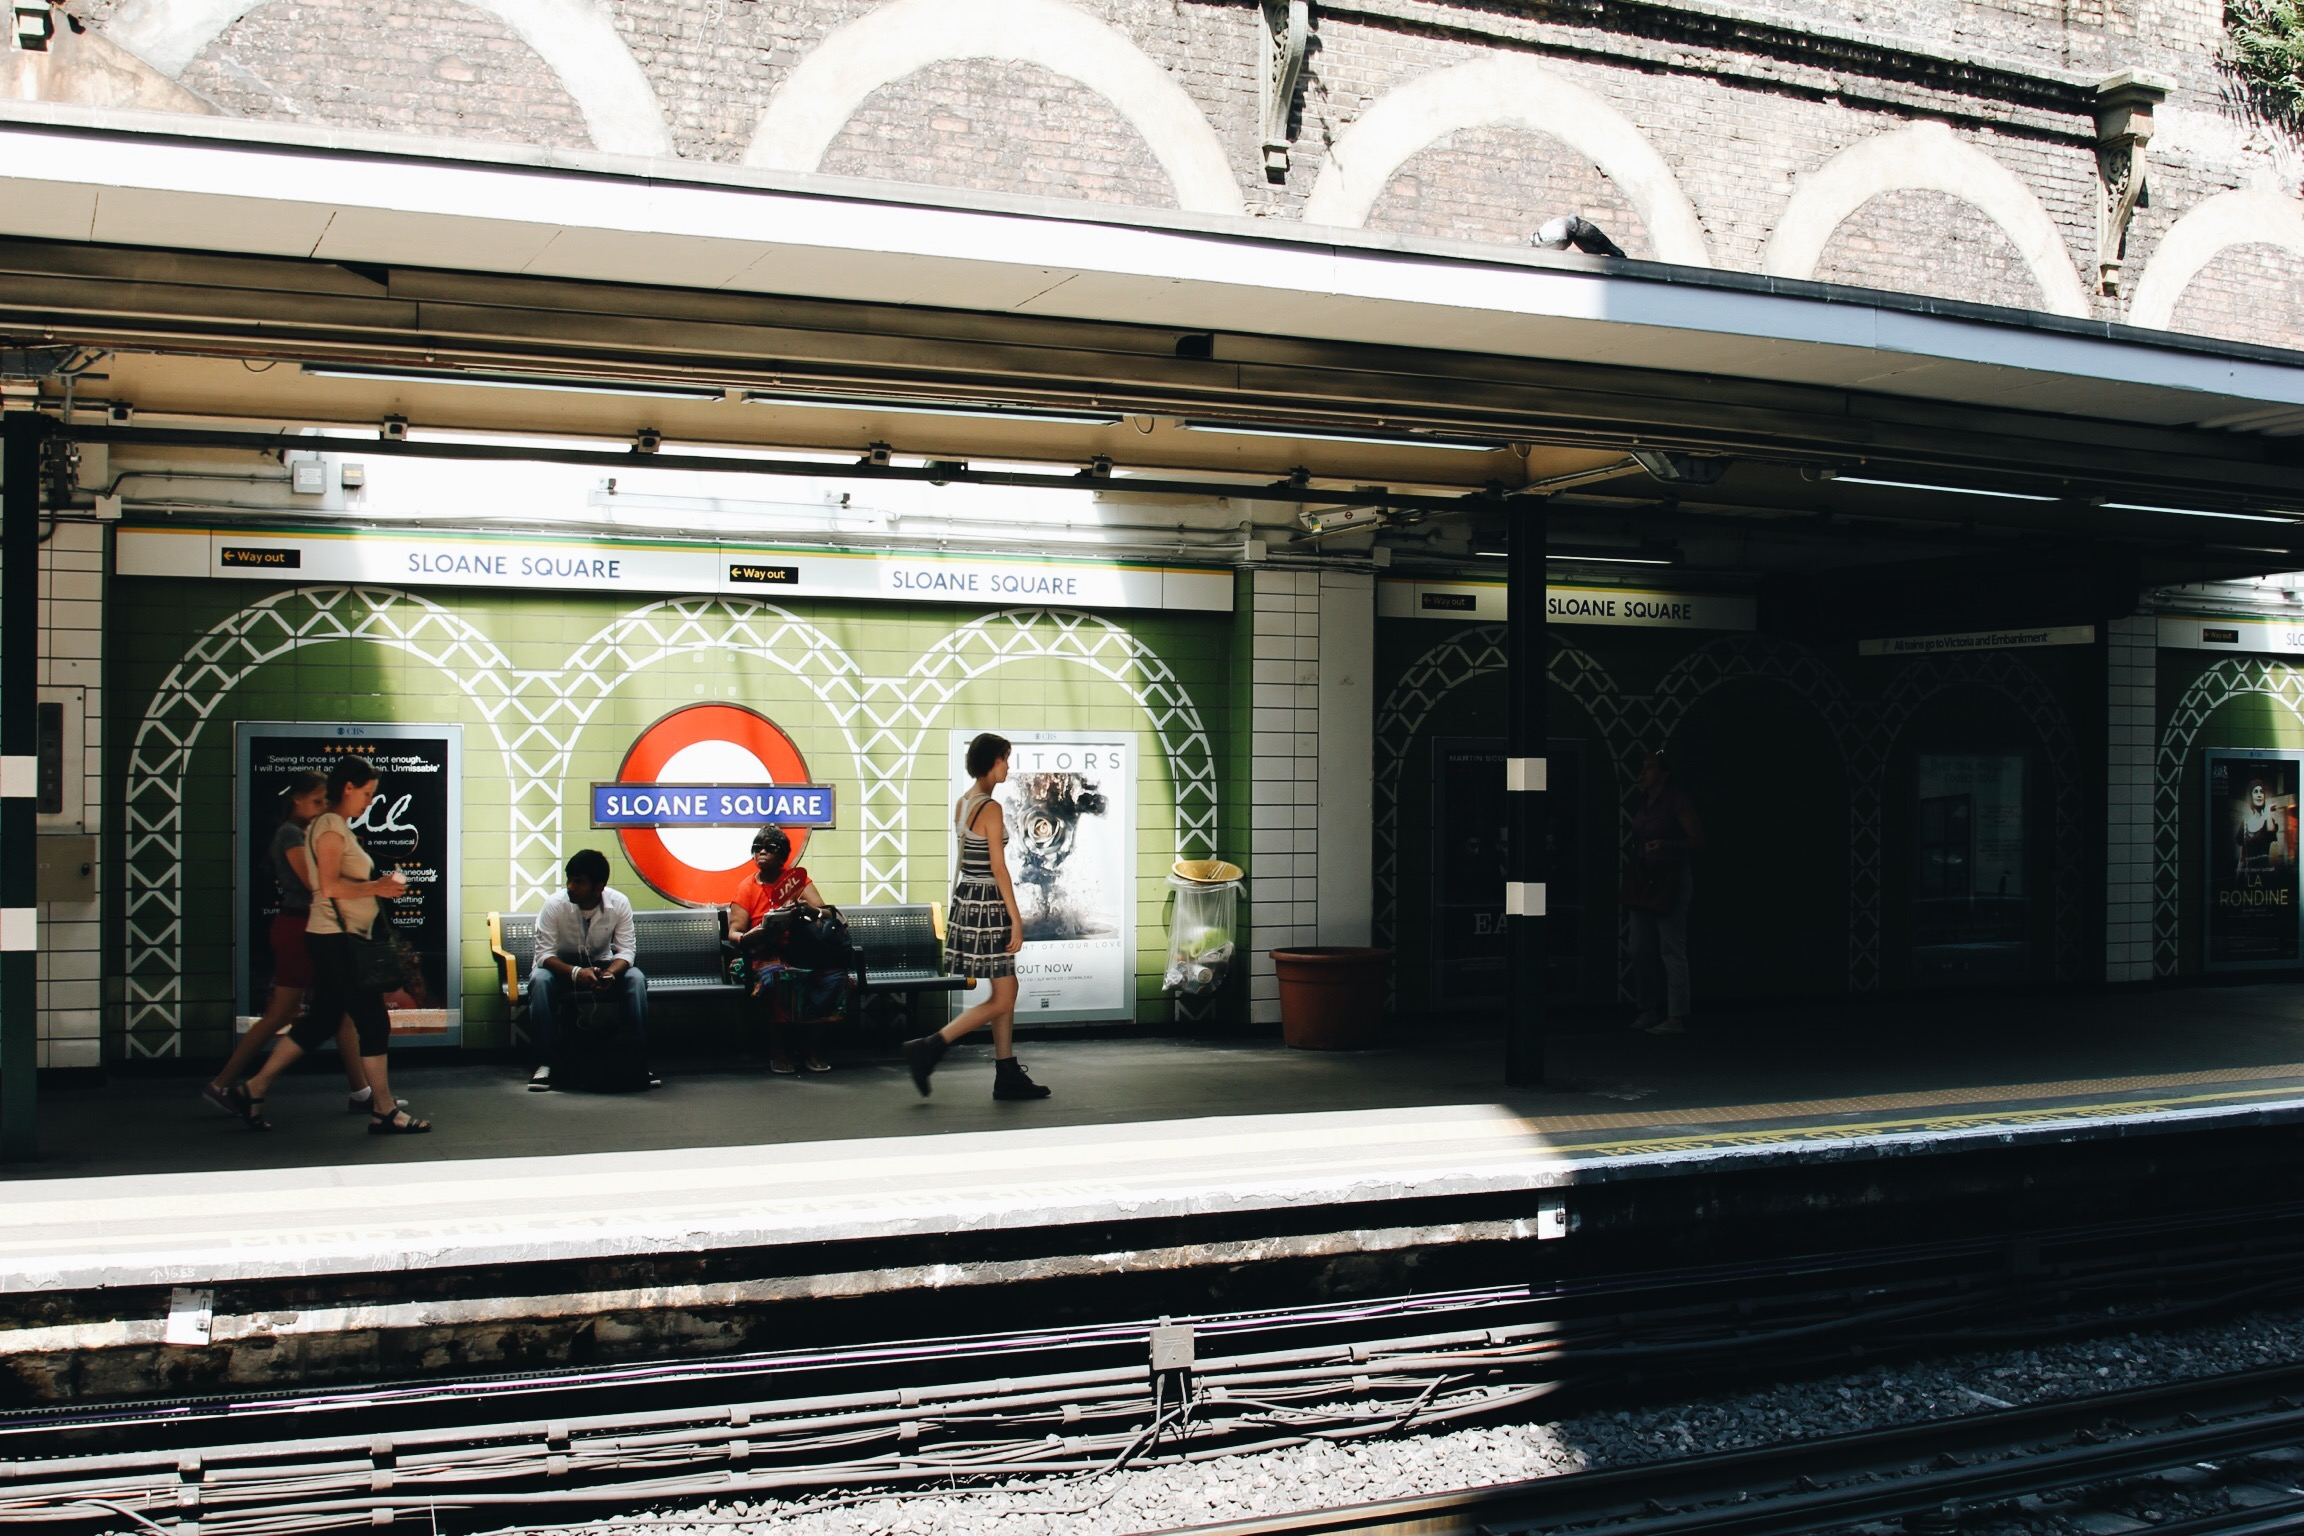 sloane-square-tube-londres.jpg